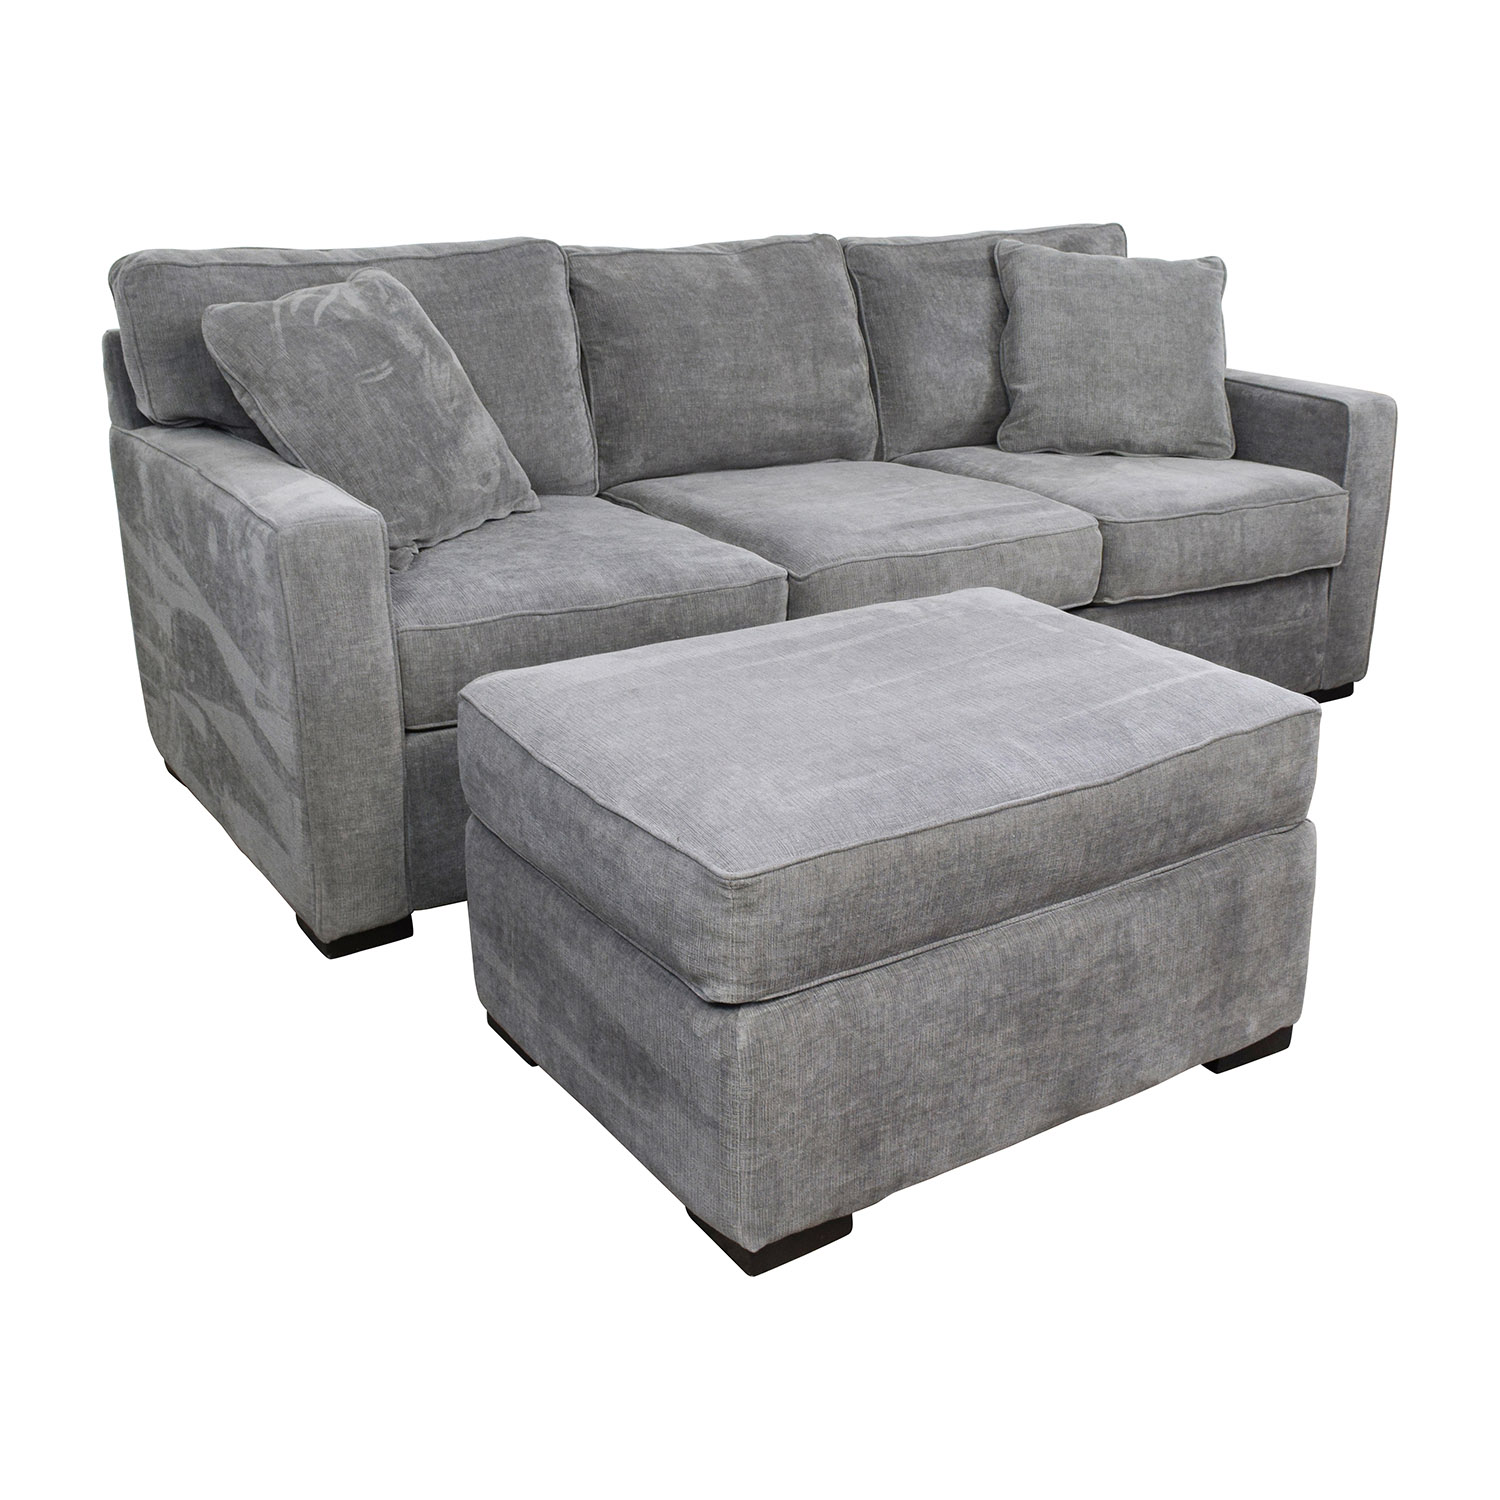 Macy's Macy's Radley Grey Sofa And Ottoman / Sofas